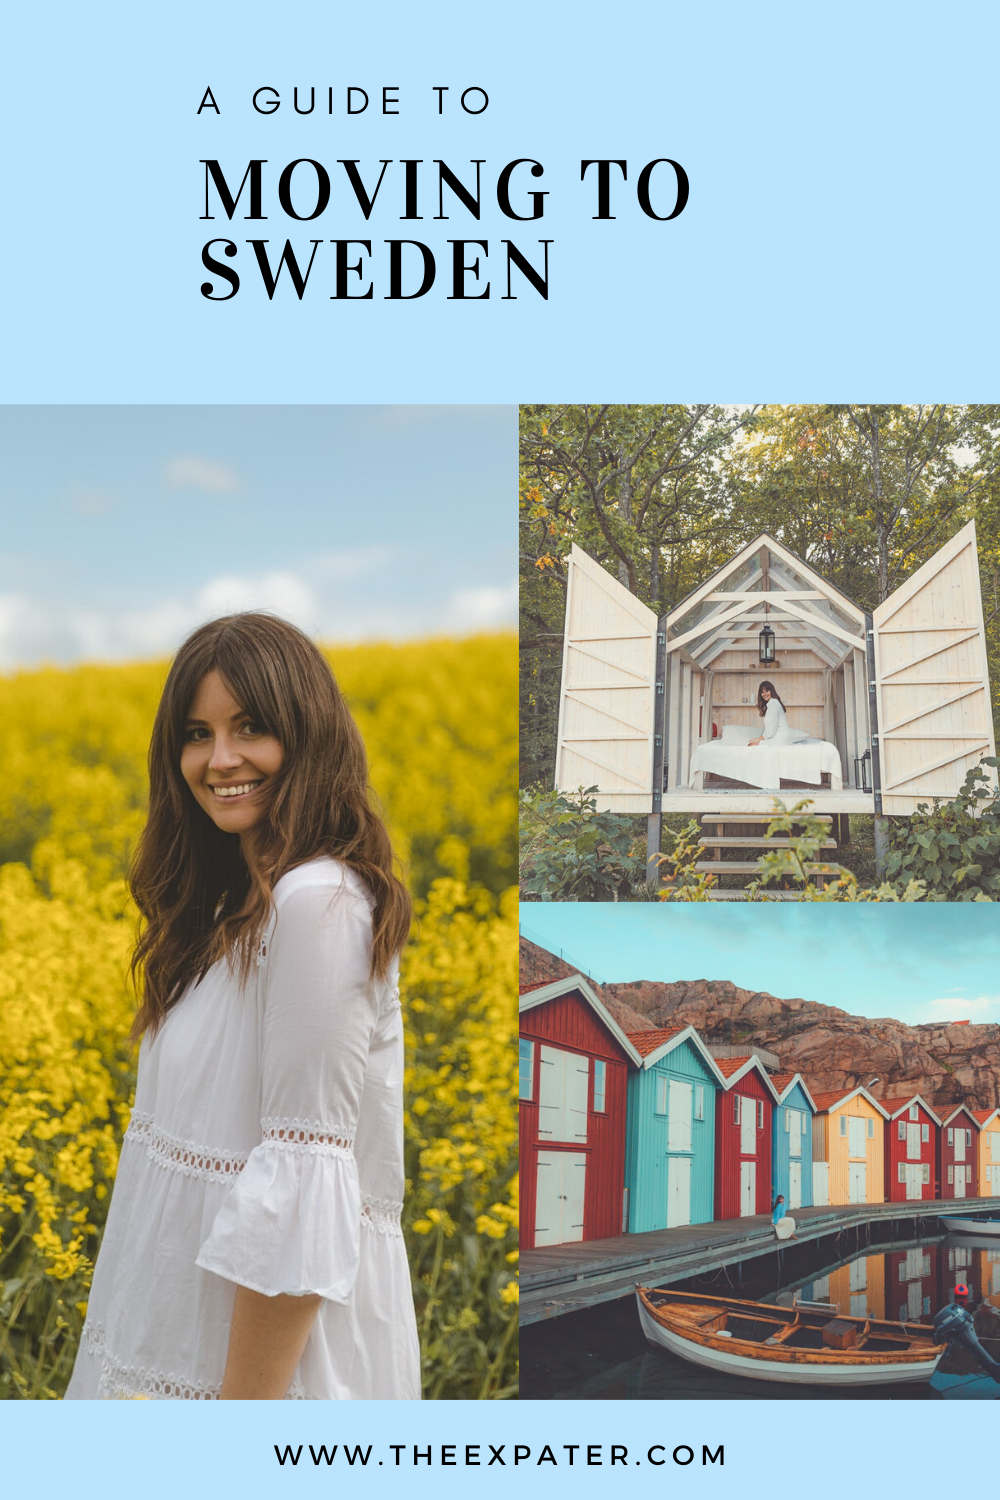 Moving to Sweden guide